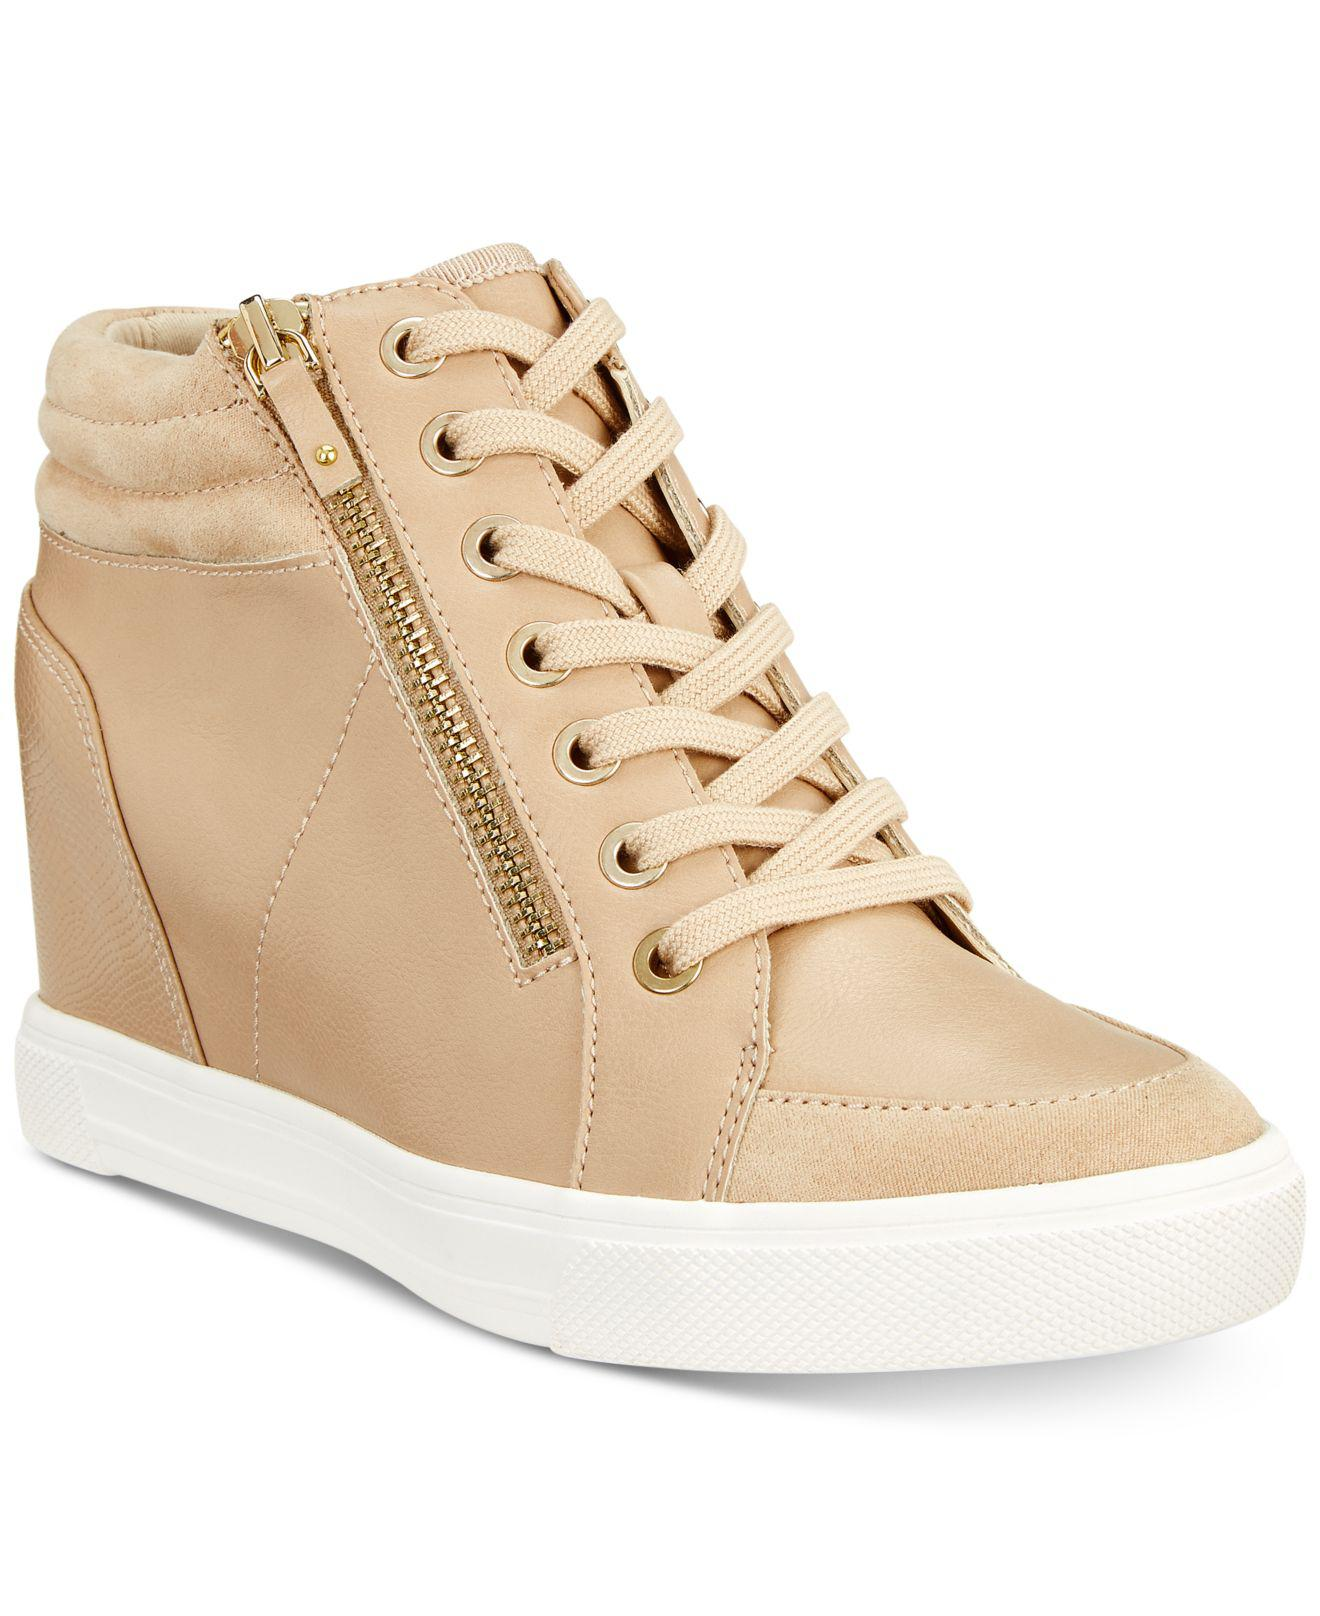 e1d5a136cd1 Lyst - ALDO Kaia Lace-up Wedge Sneakers in Natural